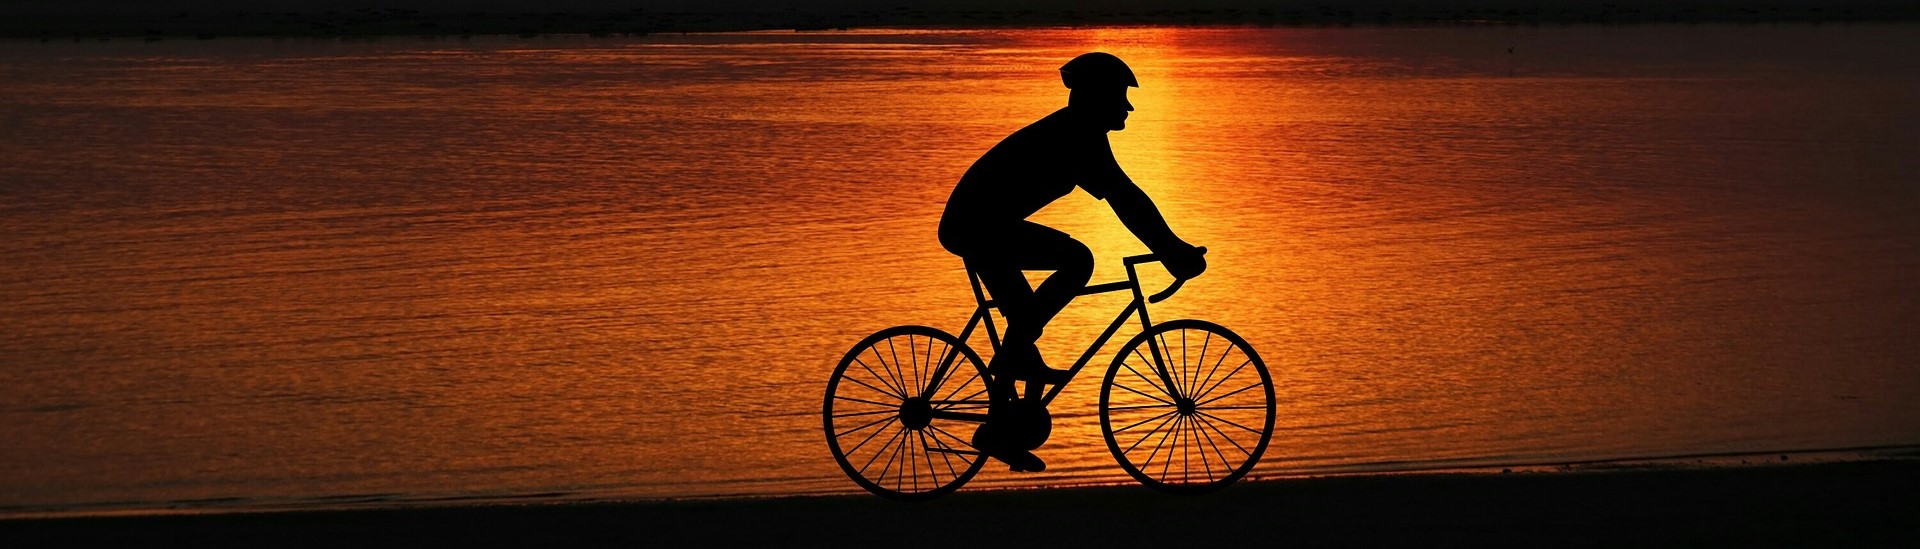 Biking under the Sunset - CarDonations4Cancer.org